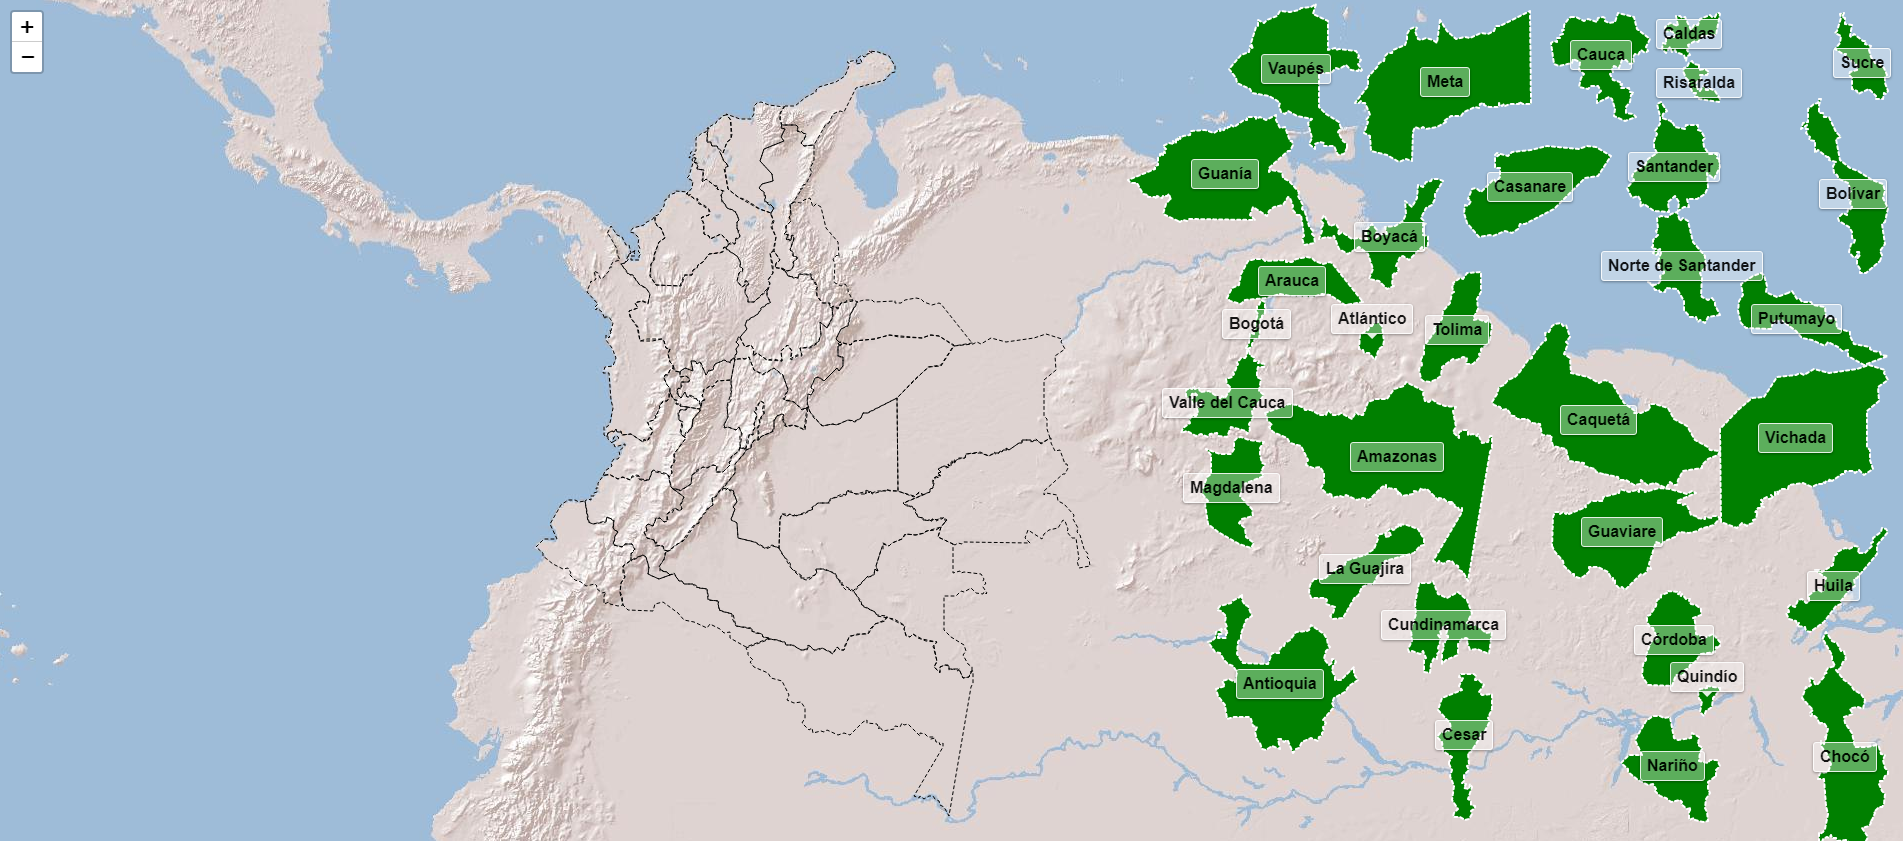 Départements de la Colombie